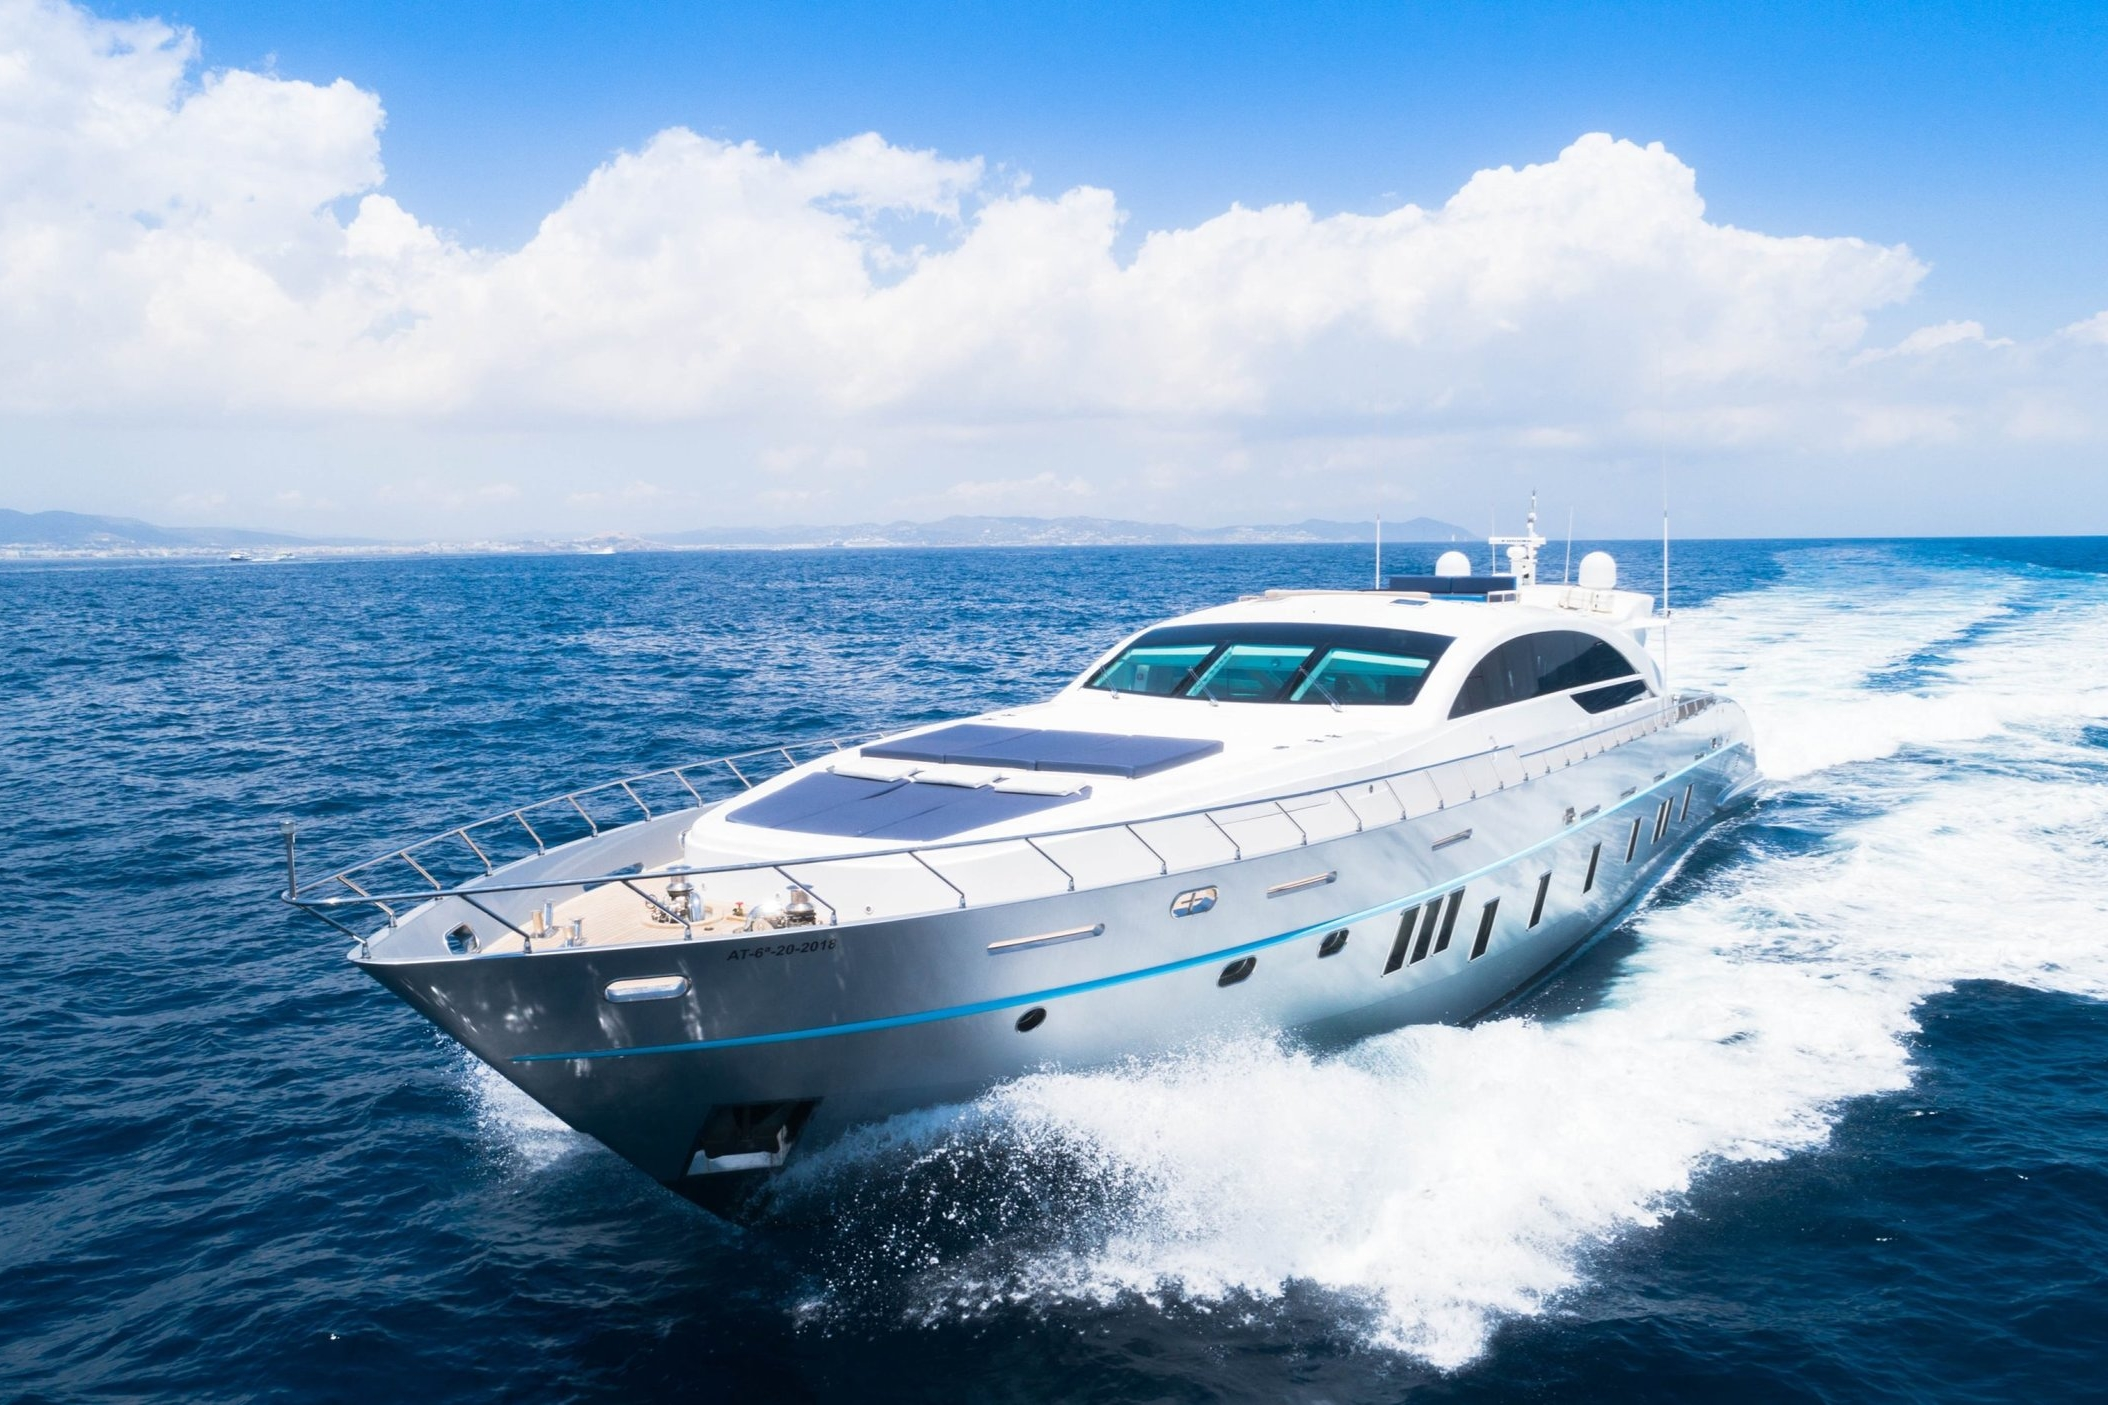 TECNOMAR VELVET 36 - Capacity: 12 | From €13800